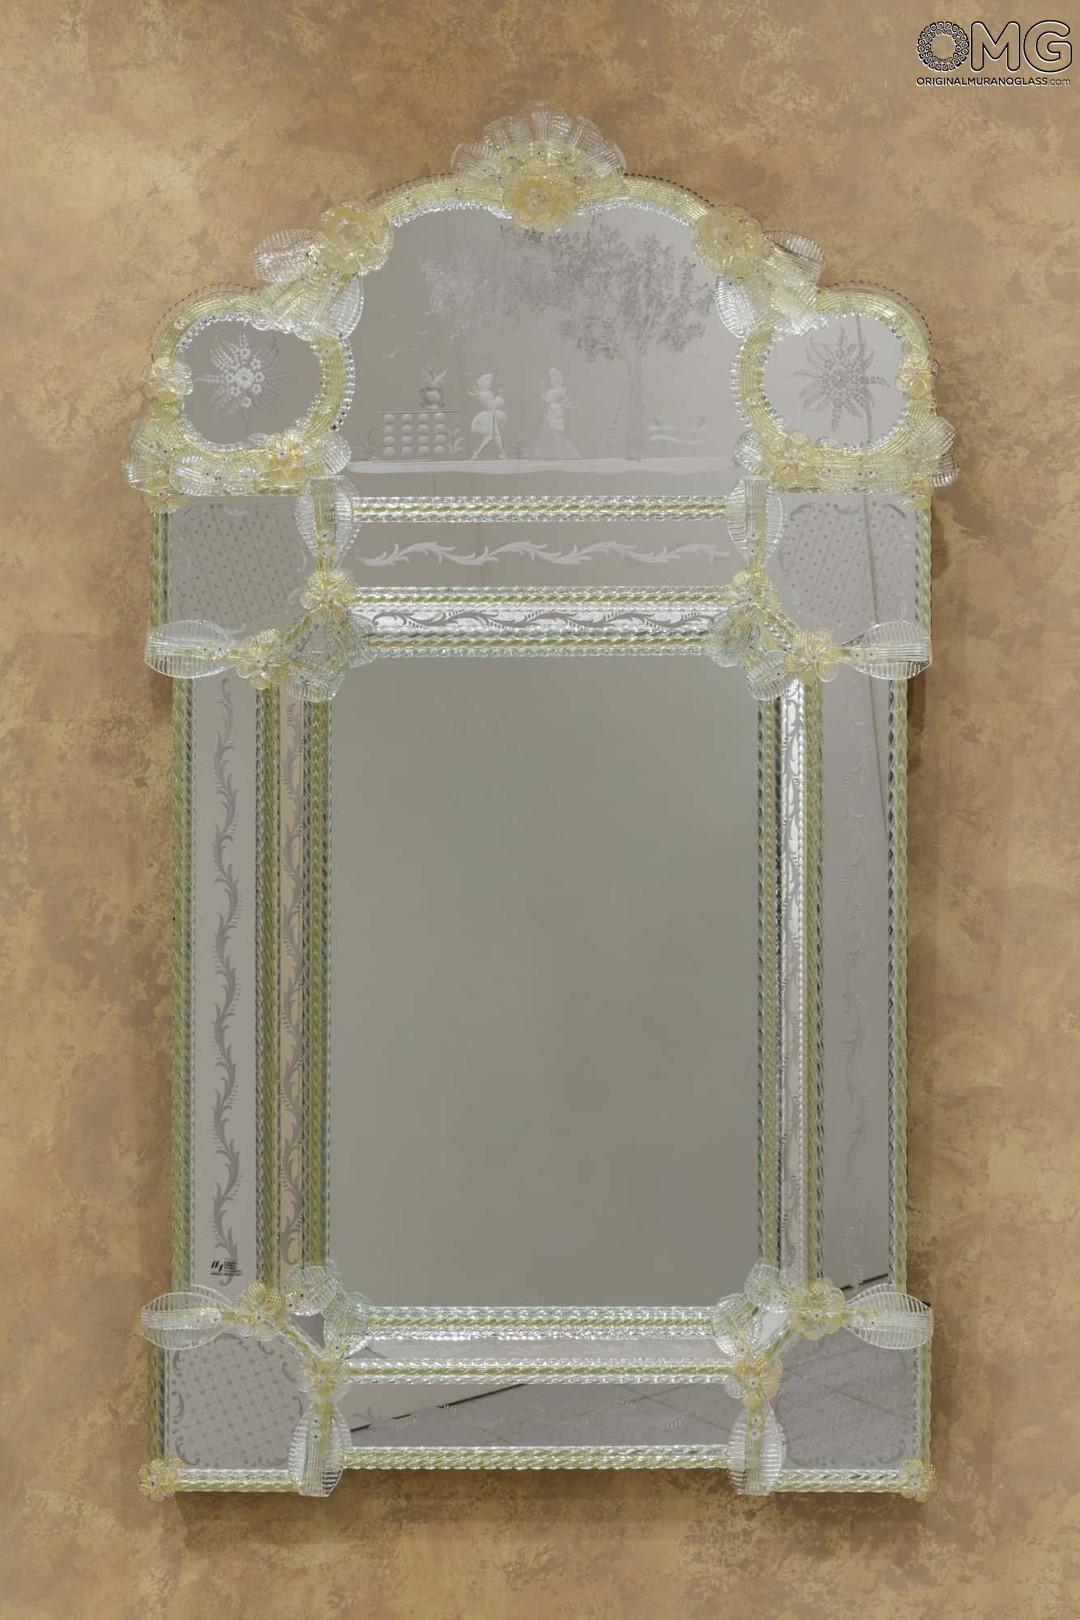 Amore - Wall Venetian Mirror - Murano Glass and Gold 24carats